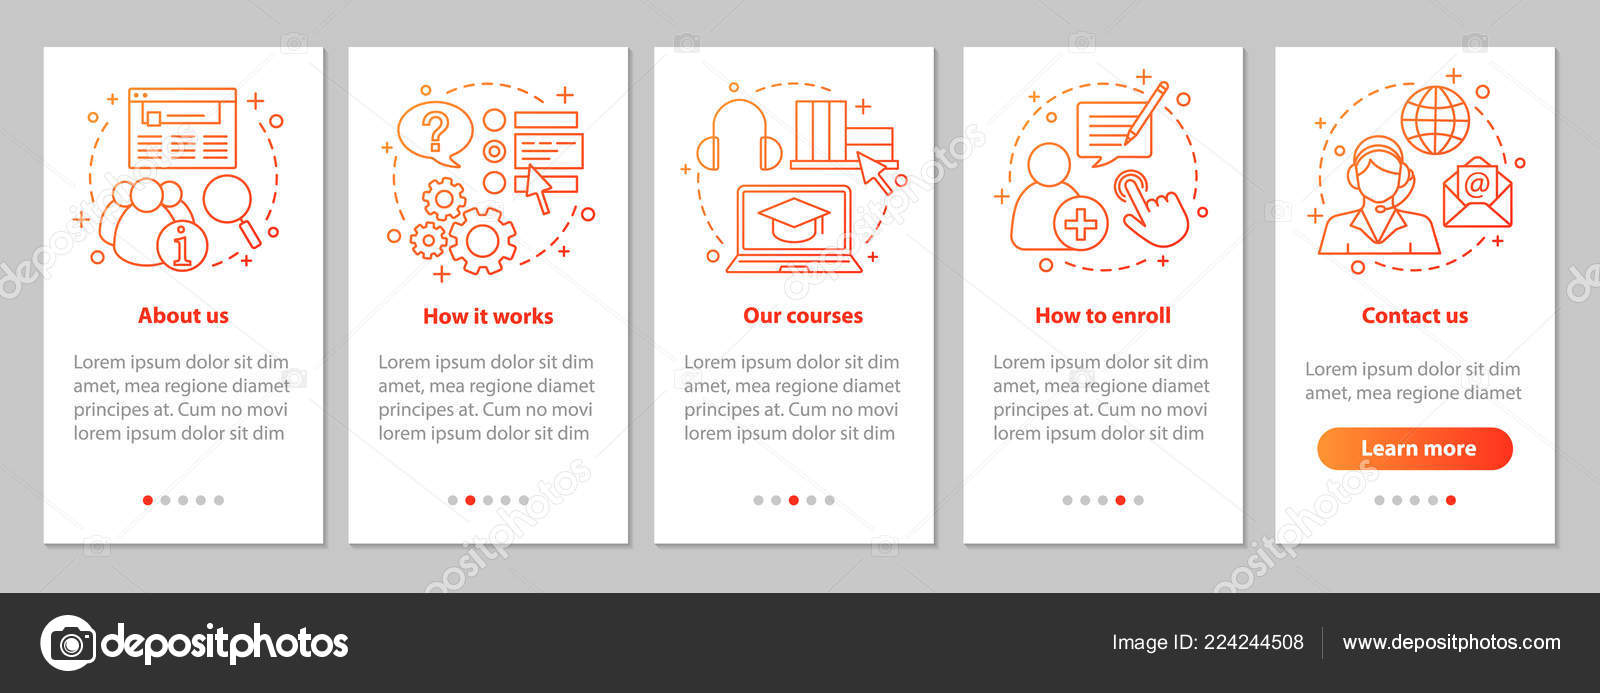 Online Courses Onboarding Mobile App Page Screen Linear Concepts